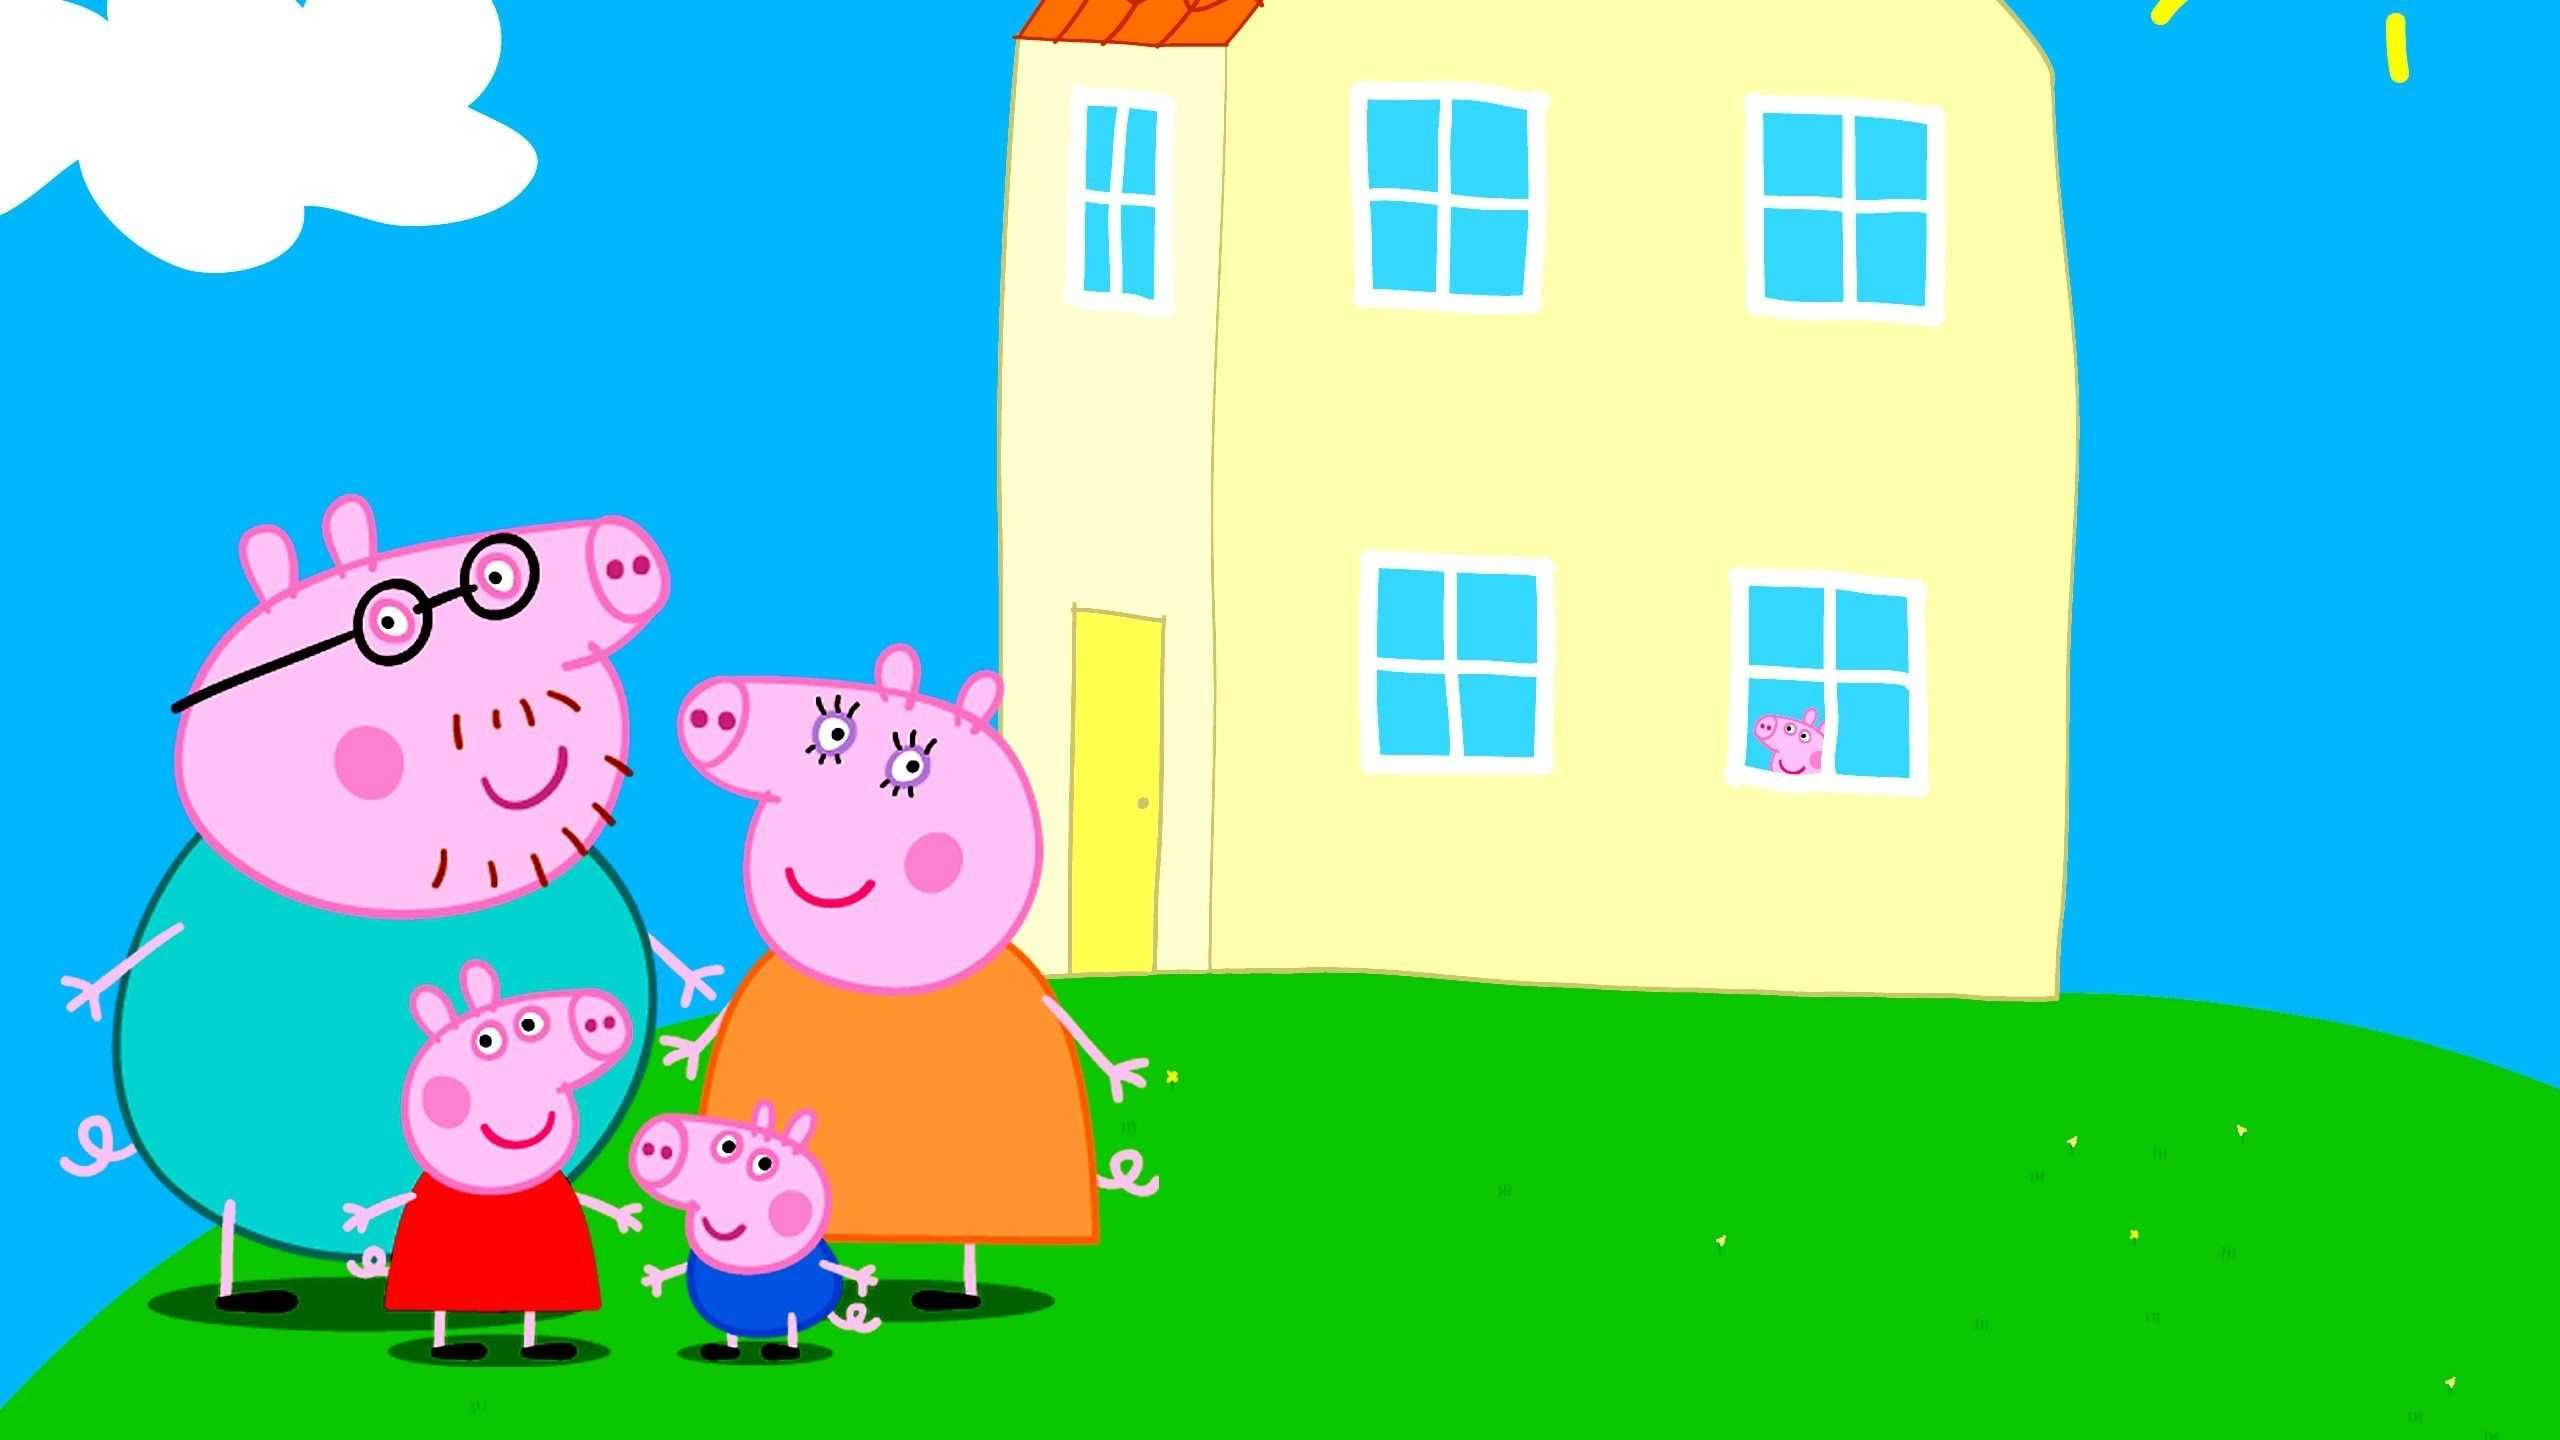 Peppa Pig House Wallpaper